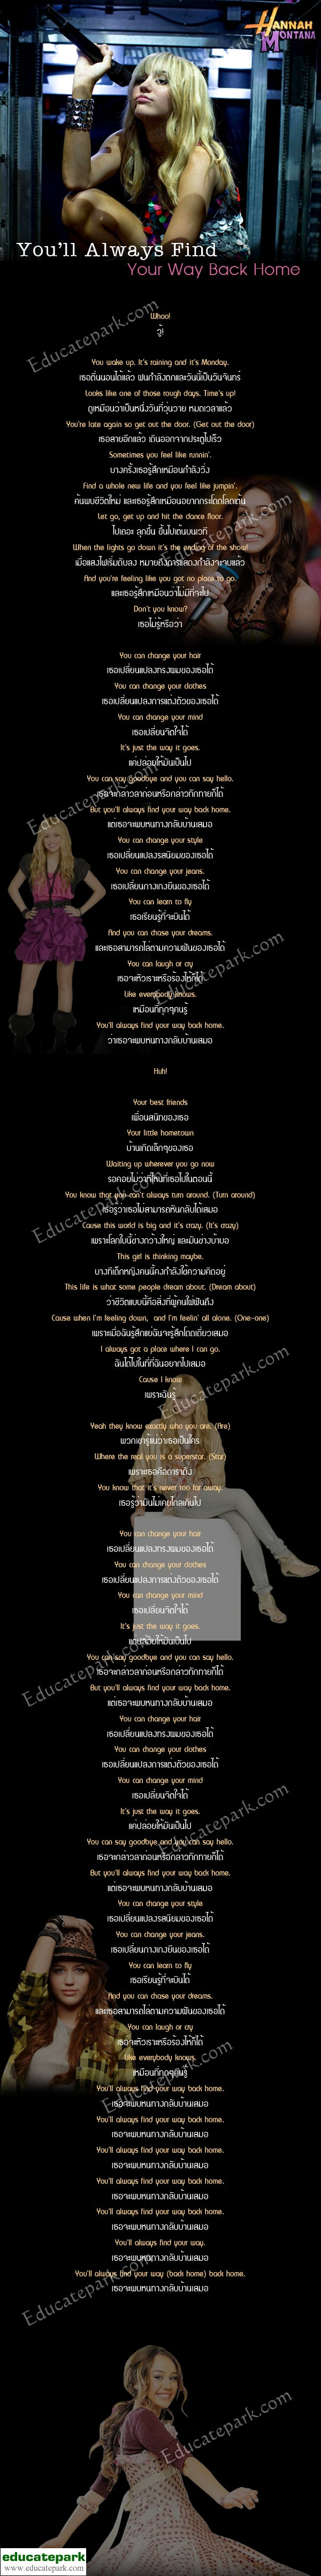 แปลเพลง You'll Always Find Your Way Back Home - Hannah Montana